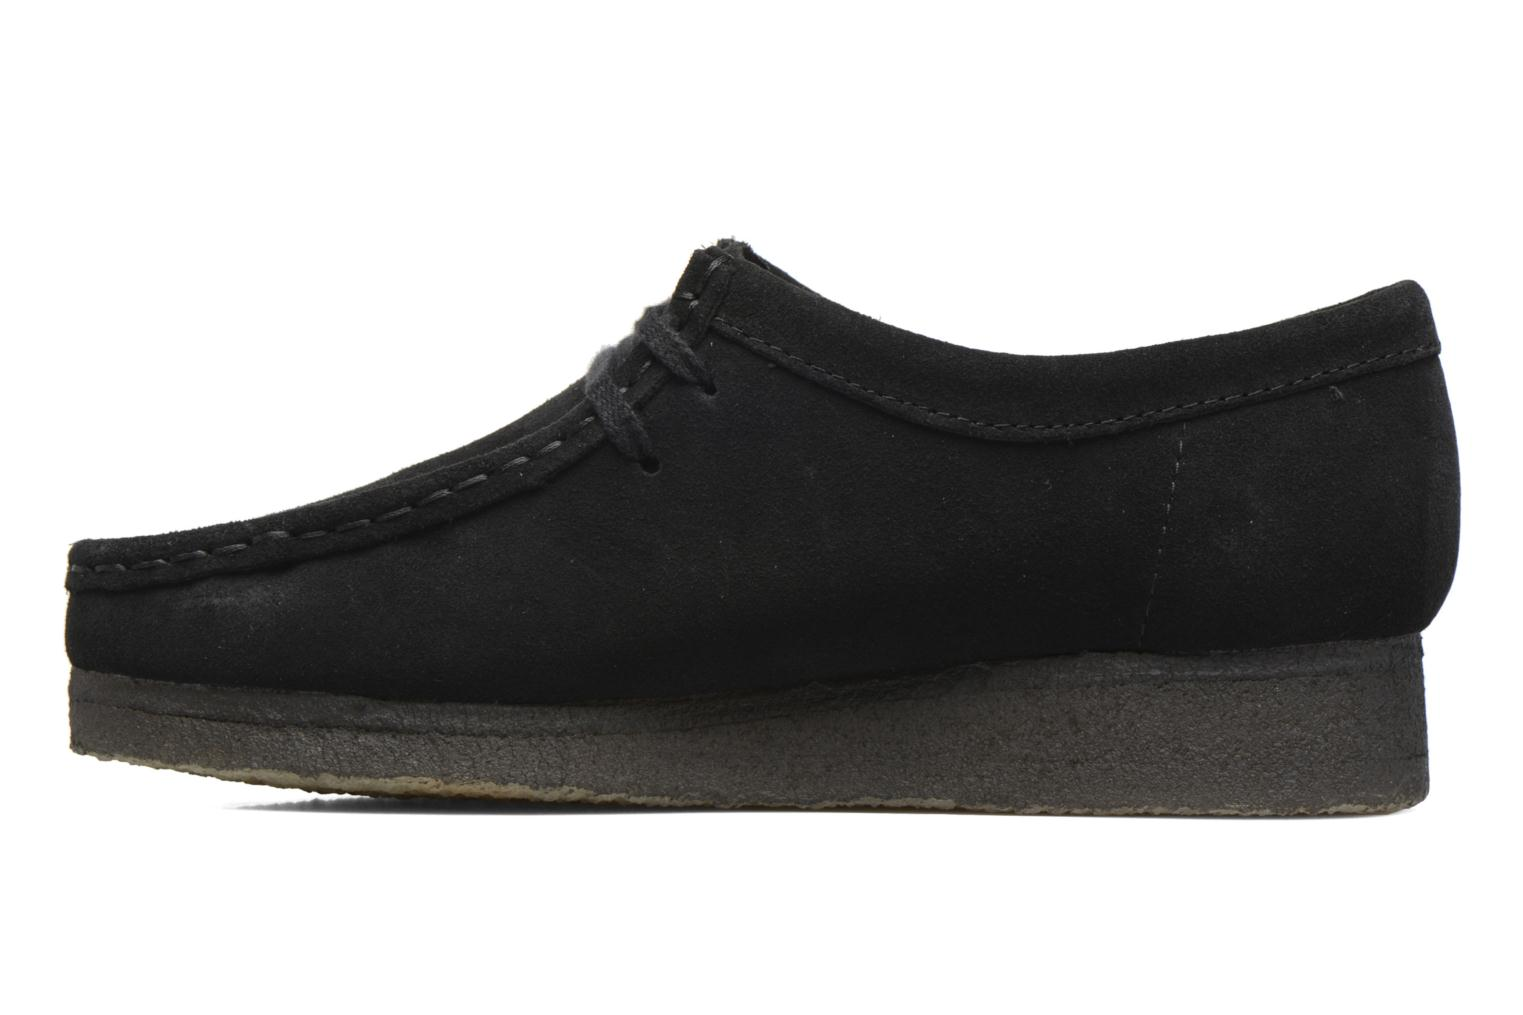 Lace-up shoes Clarks Originals Wallabee W Black front view